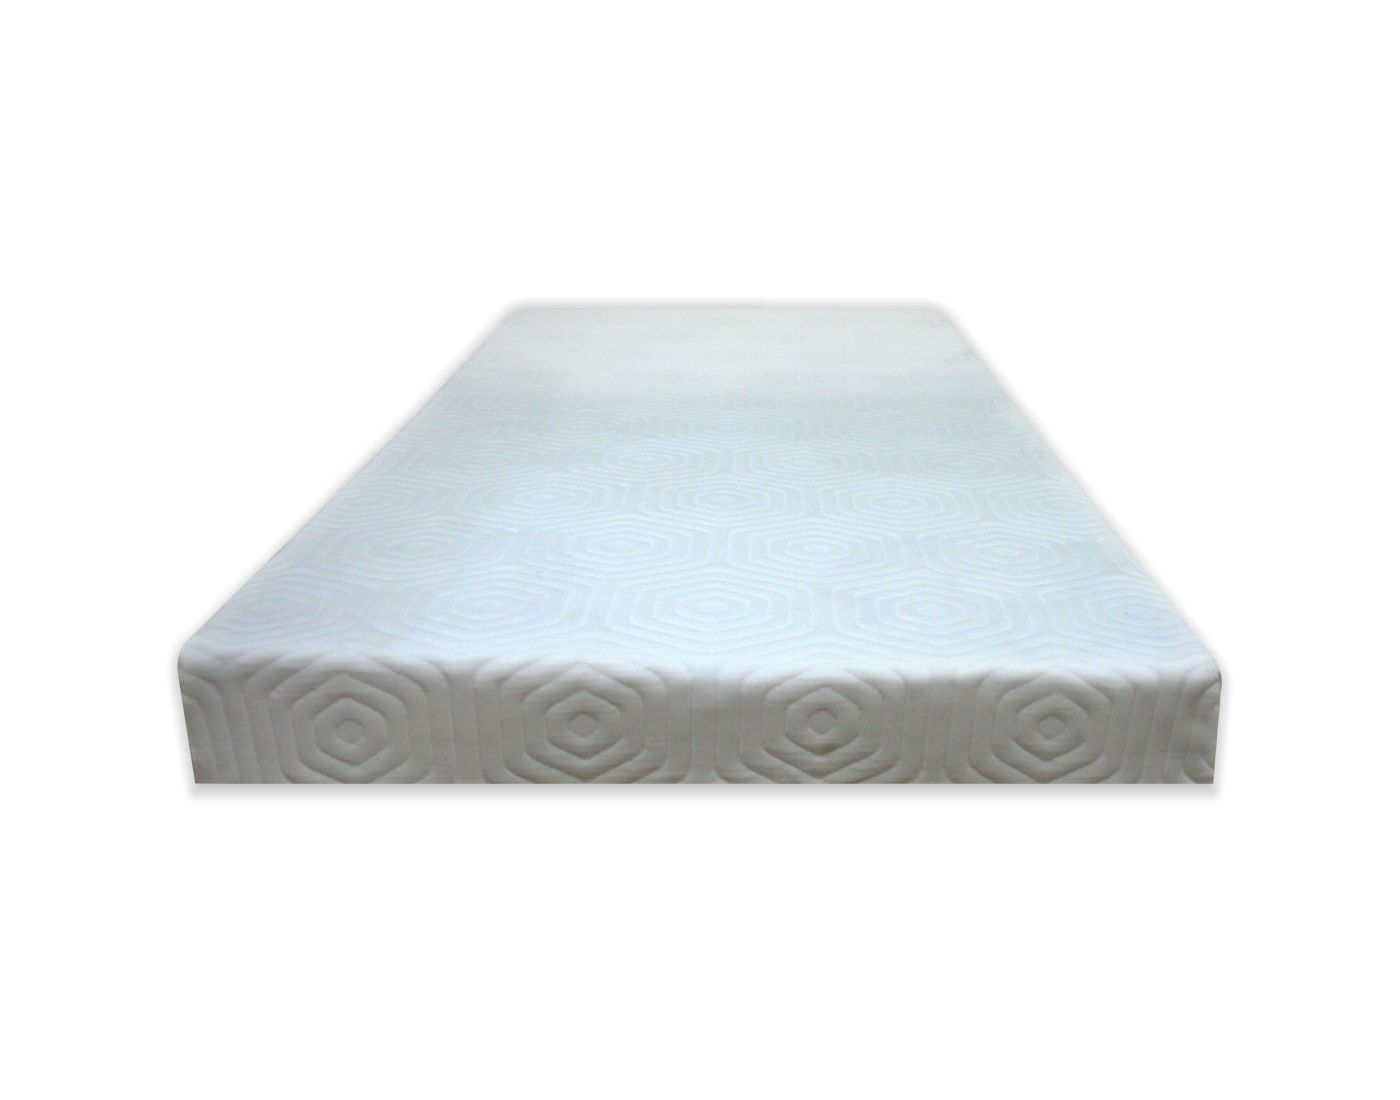 sleep spa premium orthopedic 5 inches 13 cm 5 in memory foam